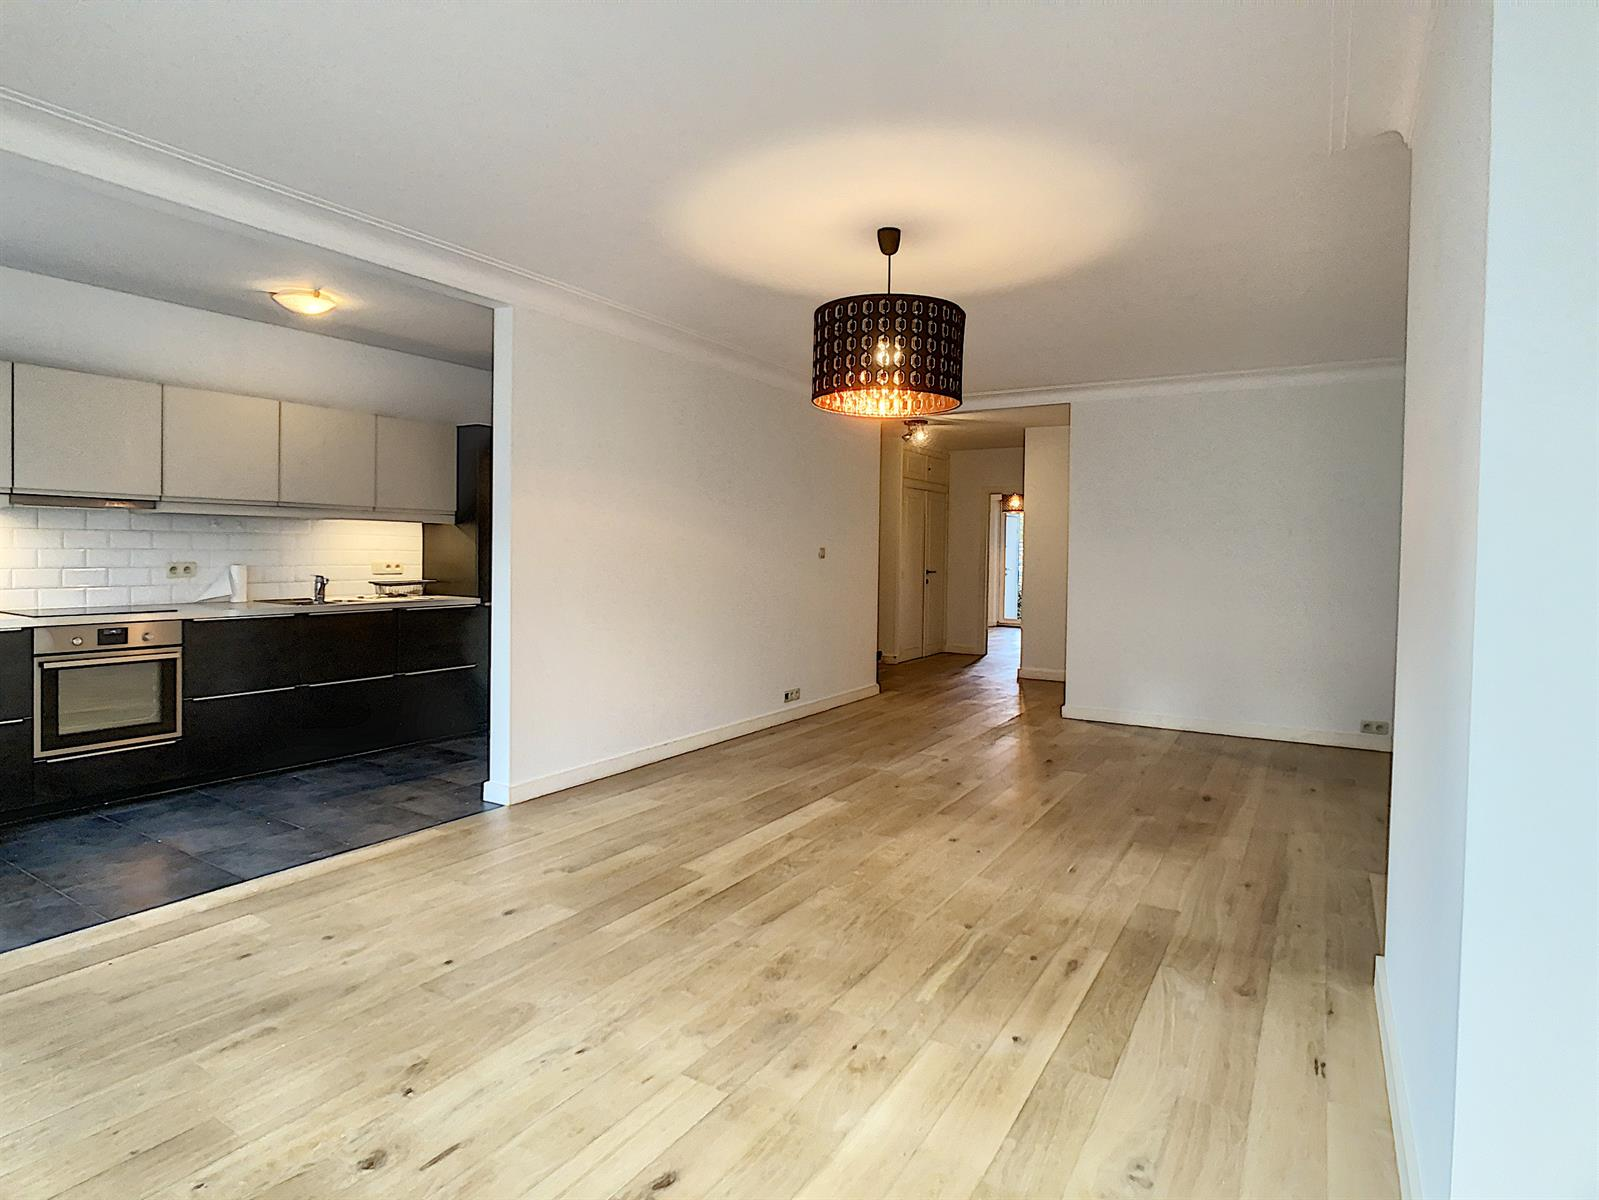 Appartement - Uccle - #4239849-2